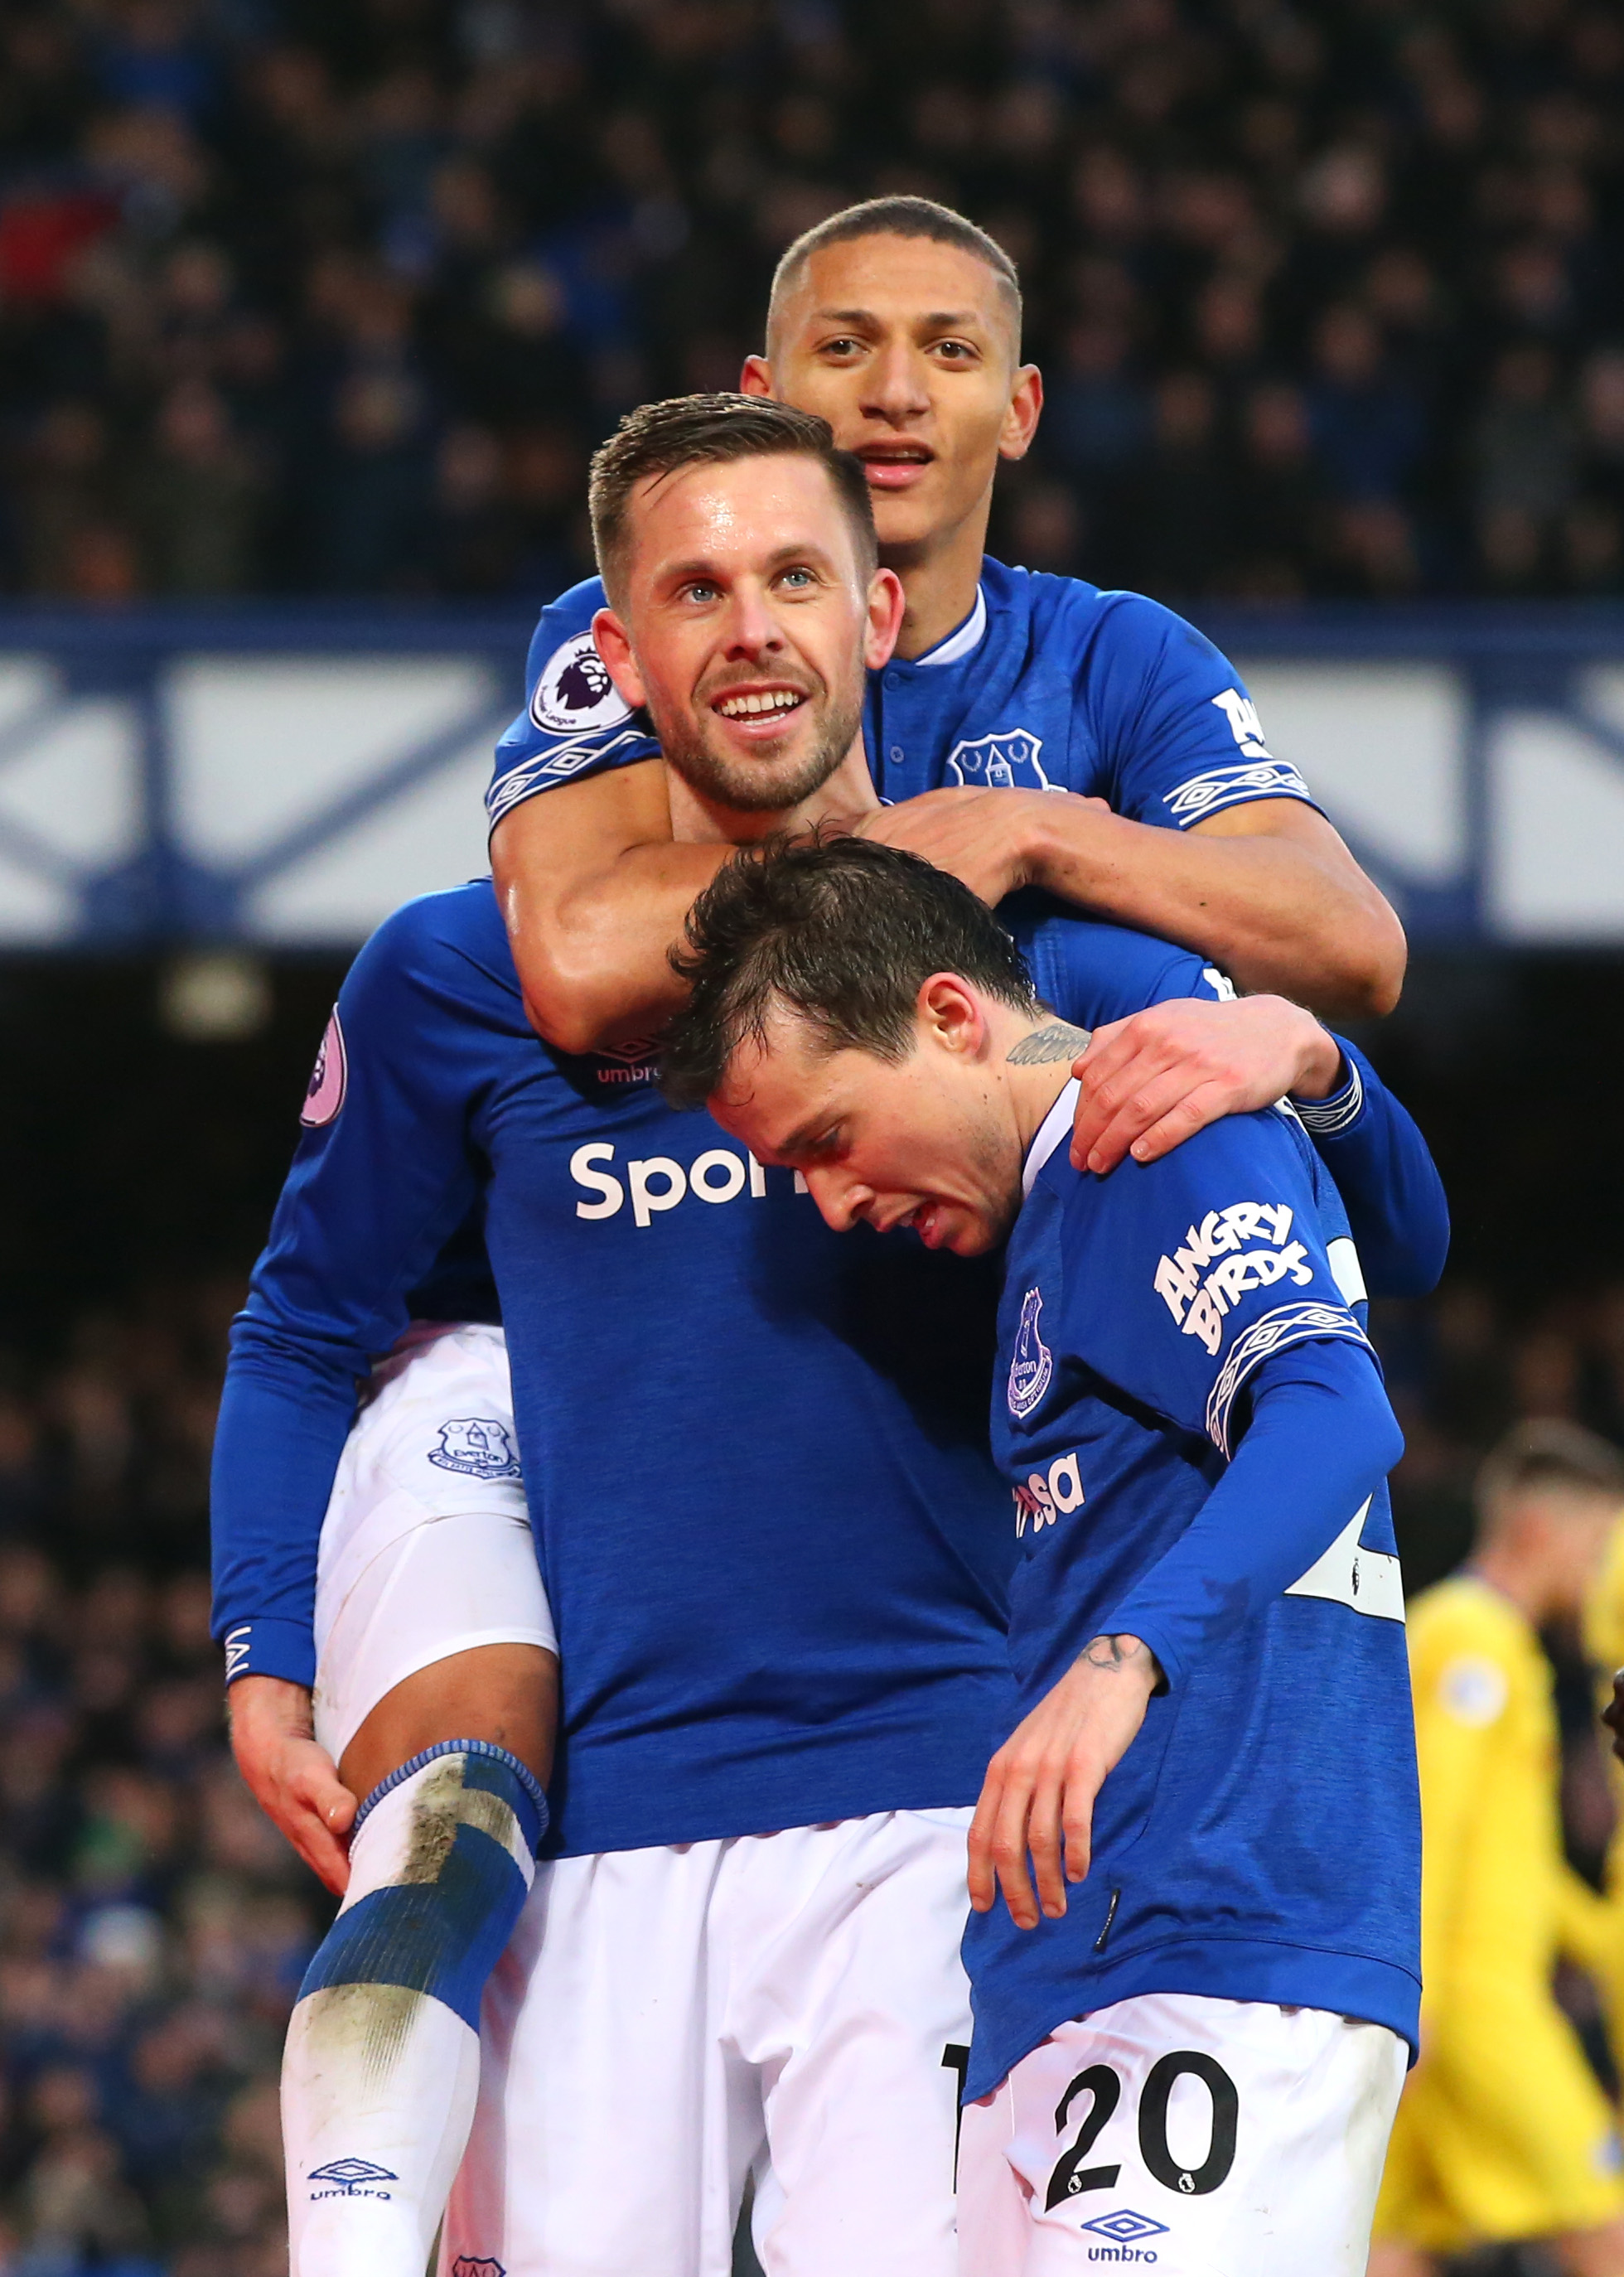 Richarlison opens up about his Everton form, Brazil ambitions and shooting practice with Gylfi Sigurdsson